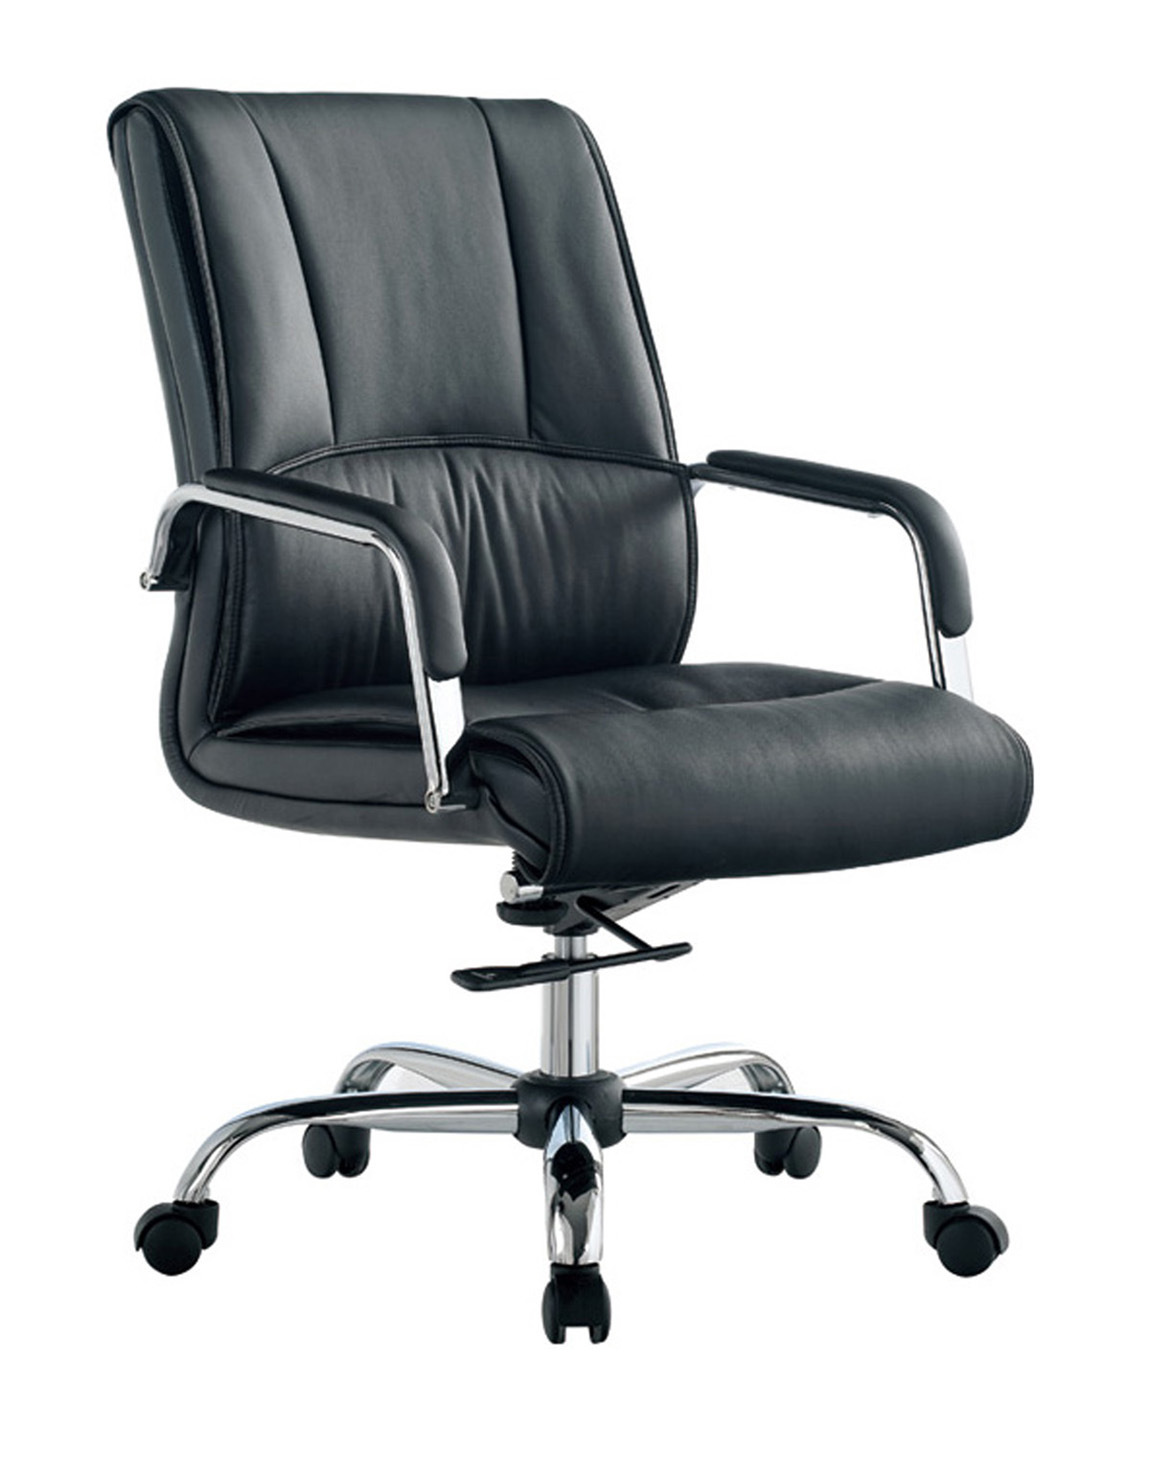 Office chairs guest chairs for office for Office chair images